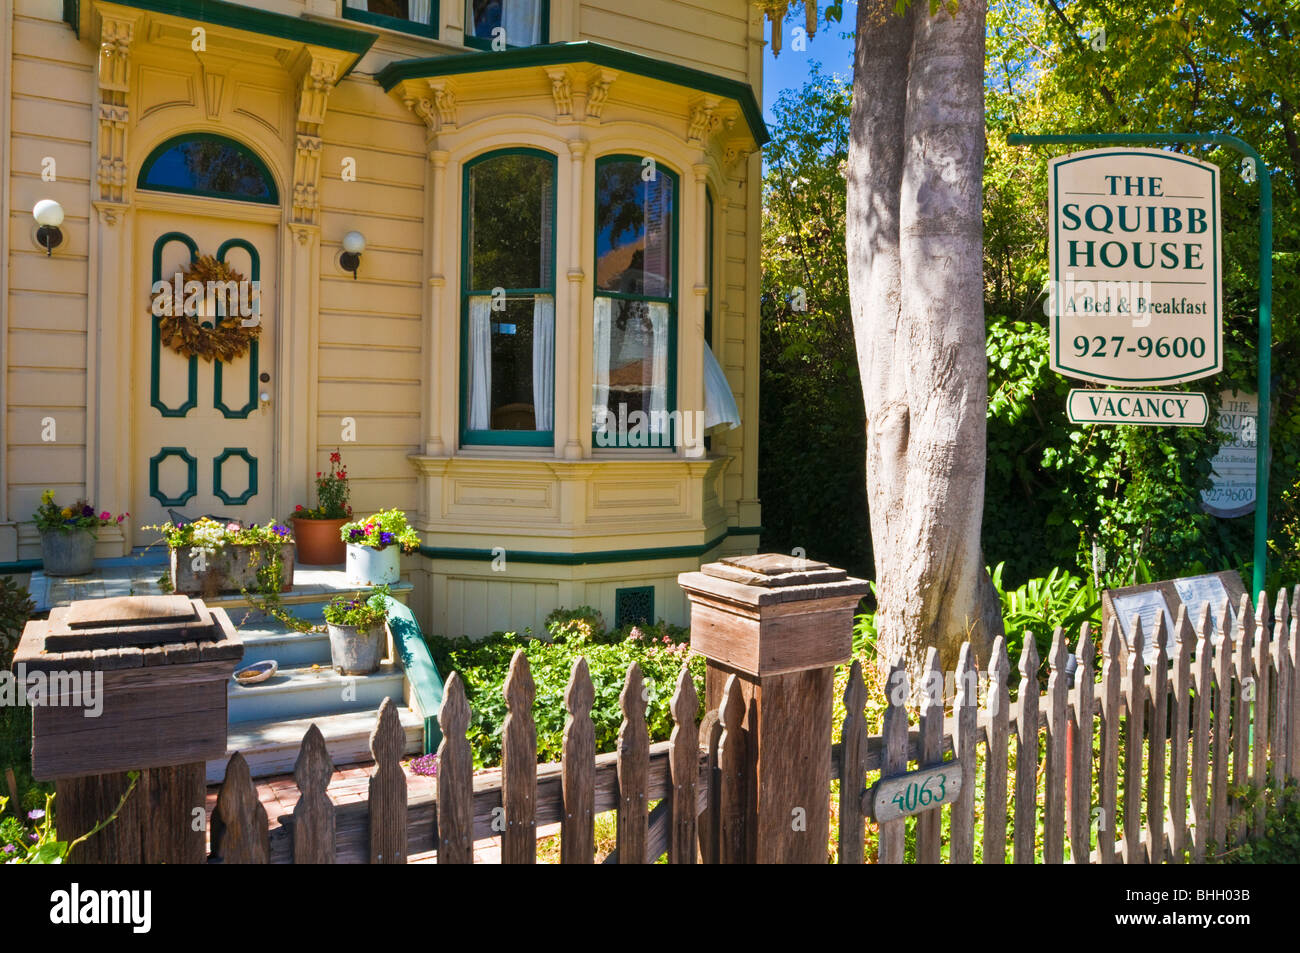 Squibb House Bed And Breakfast Cambria California Stock